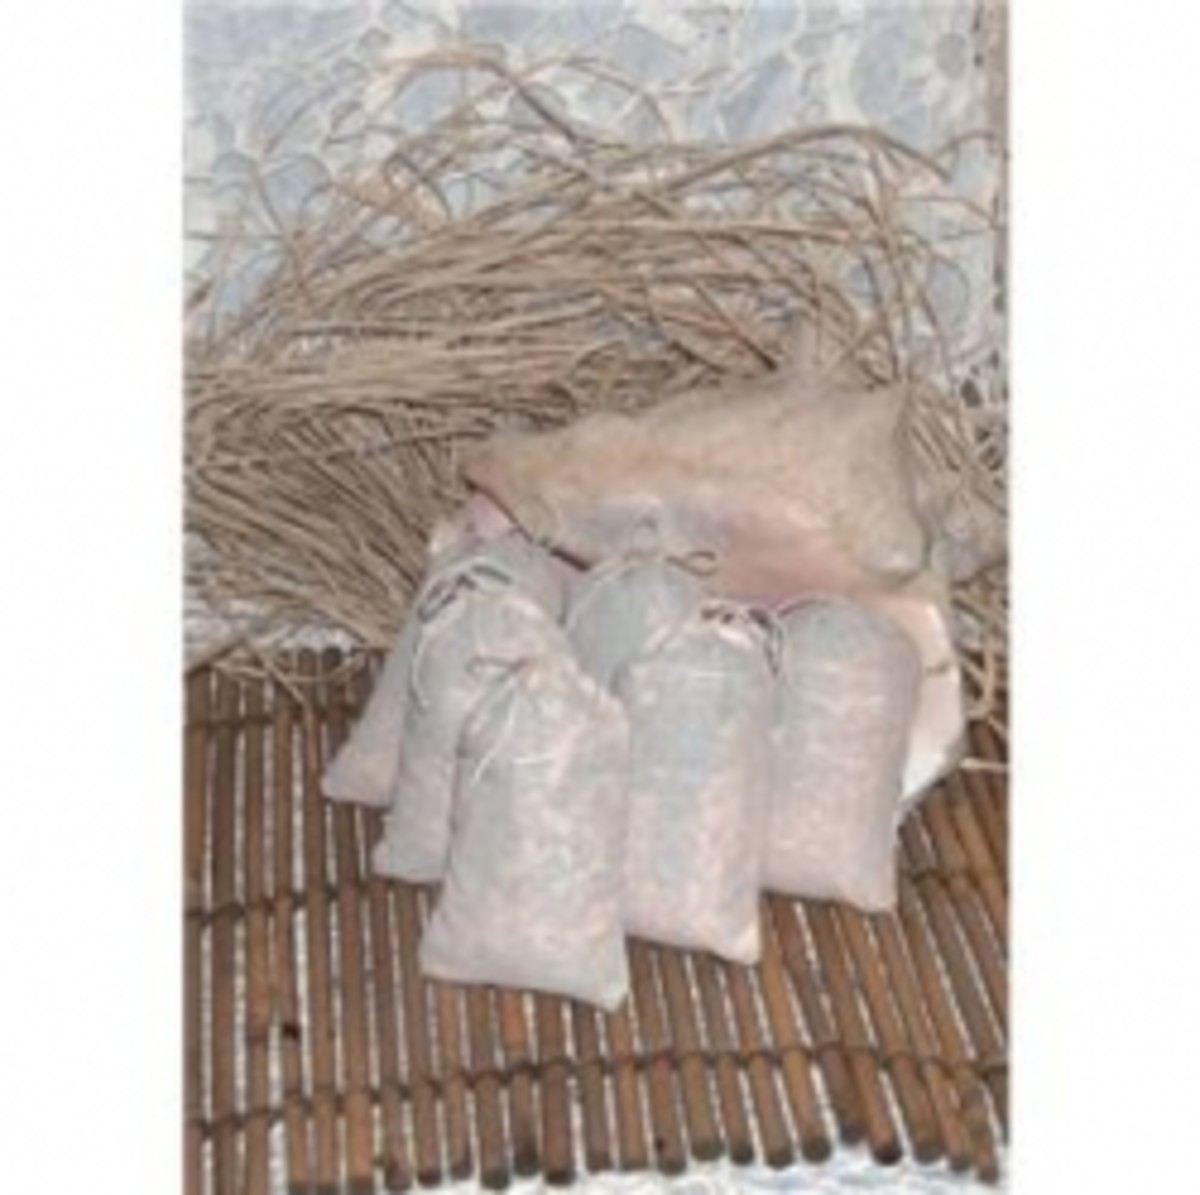 All natural cedar-lavender sachets make great party favors for the guests